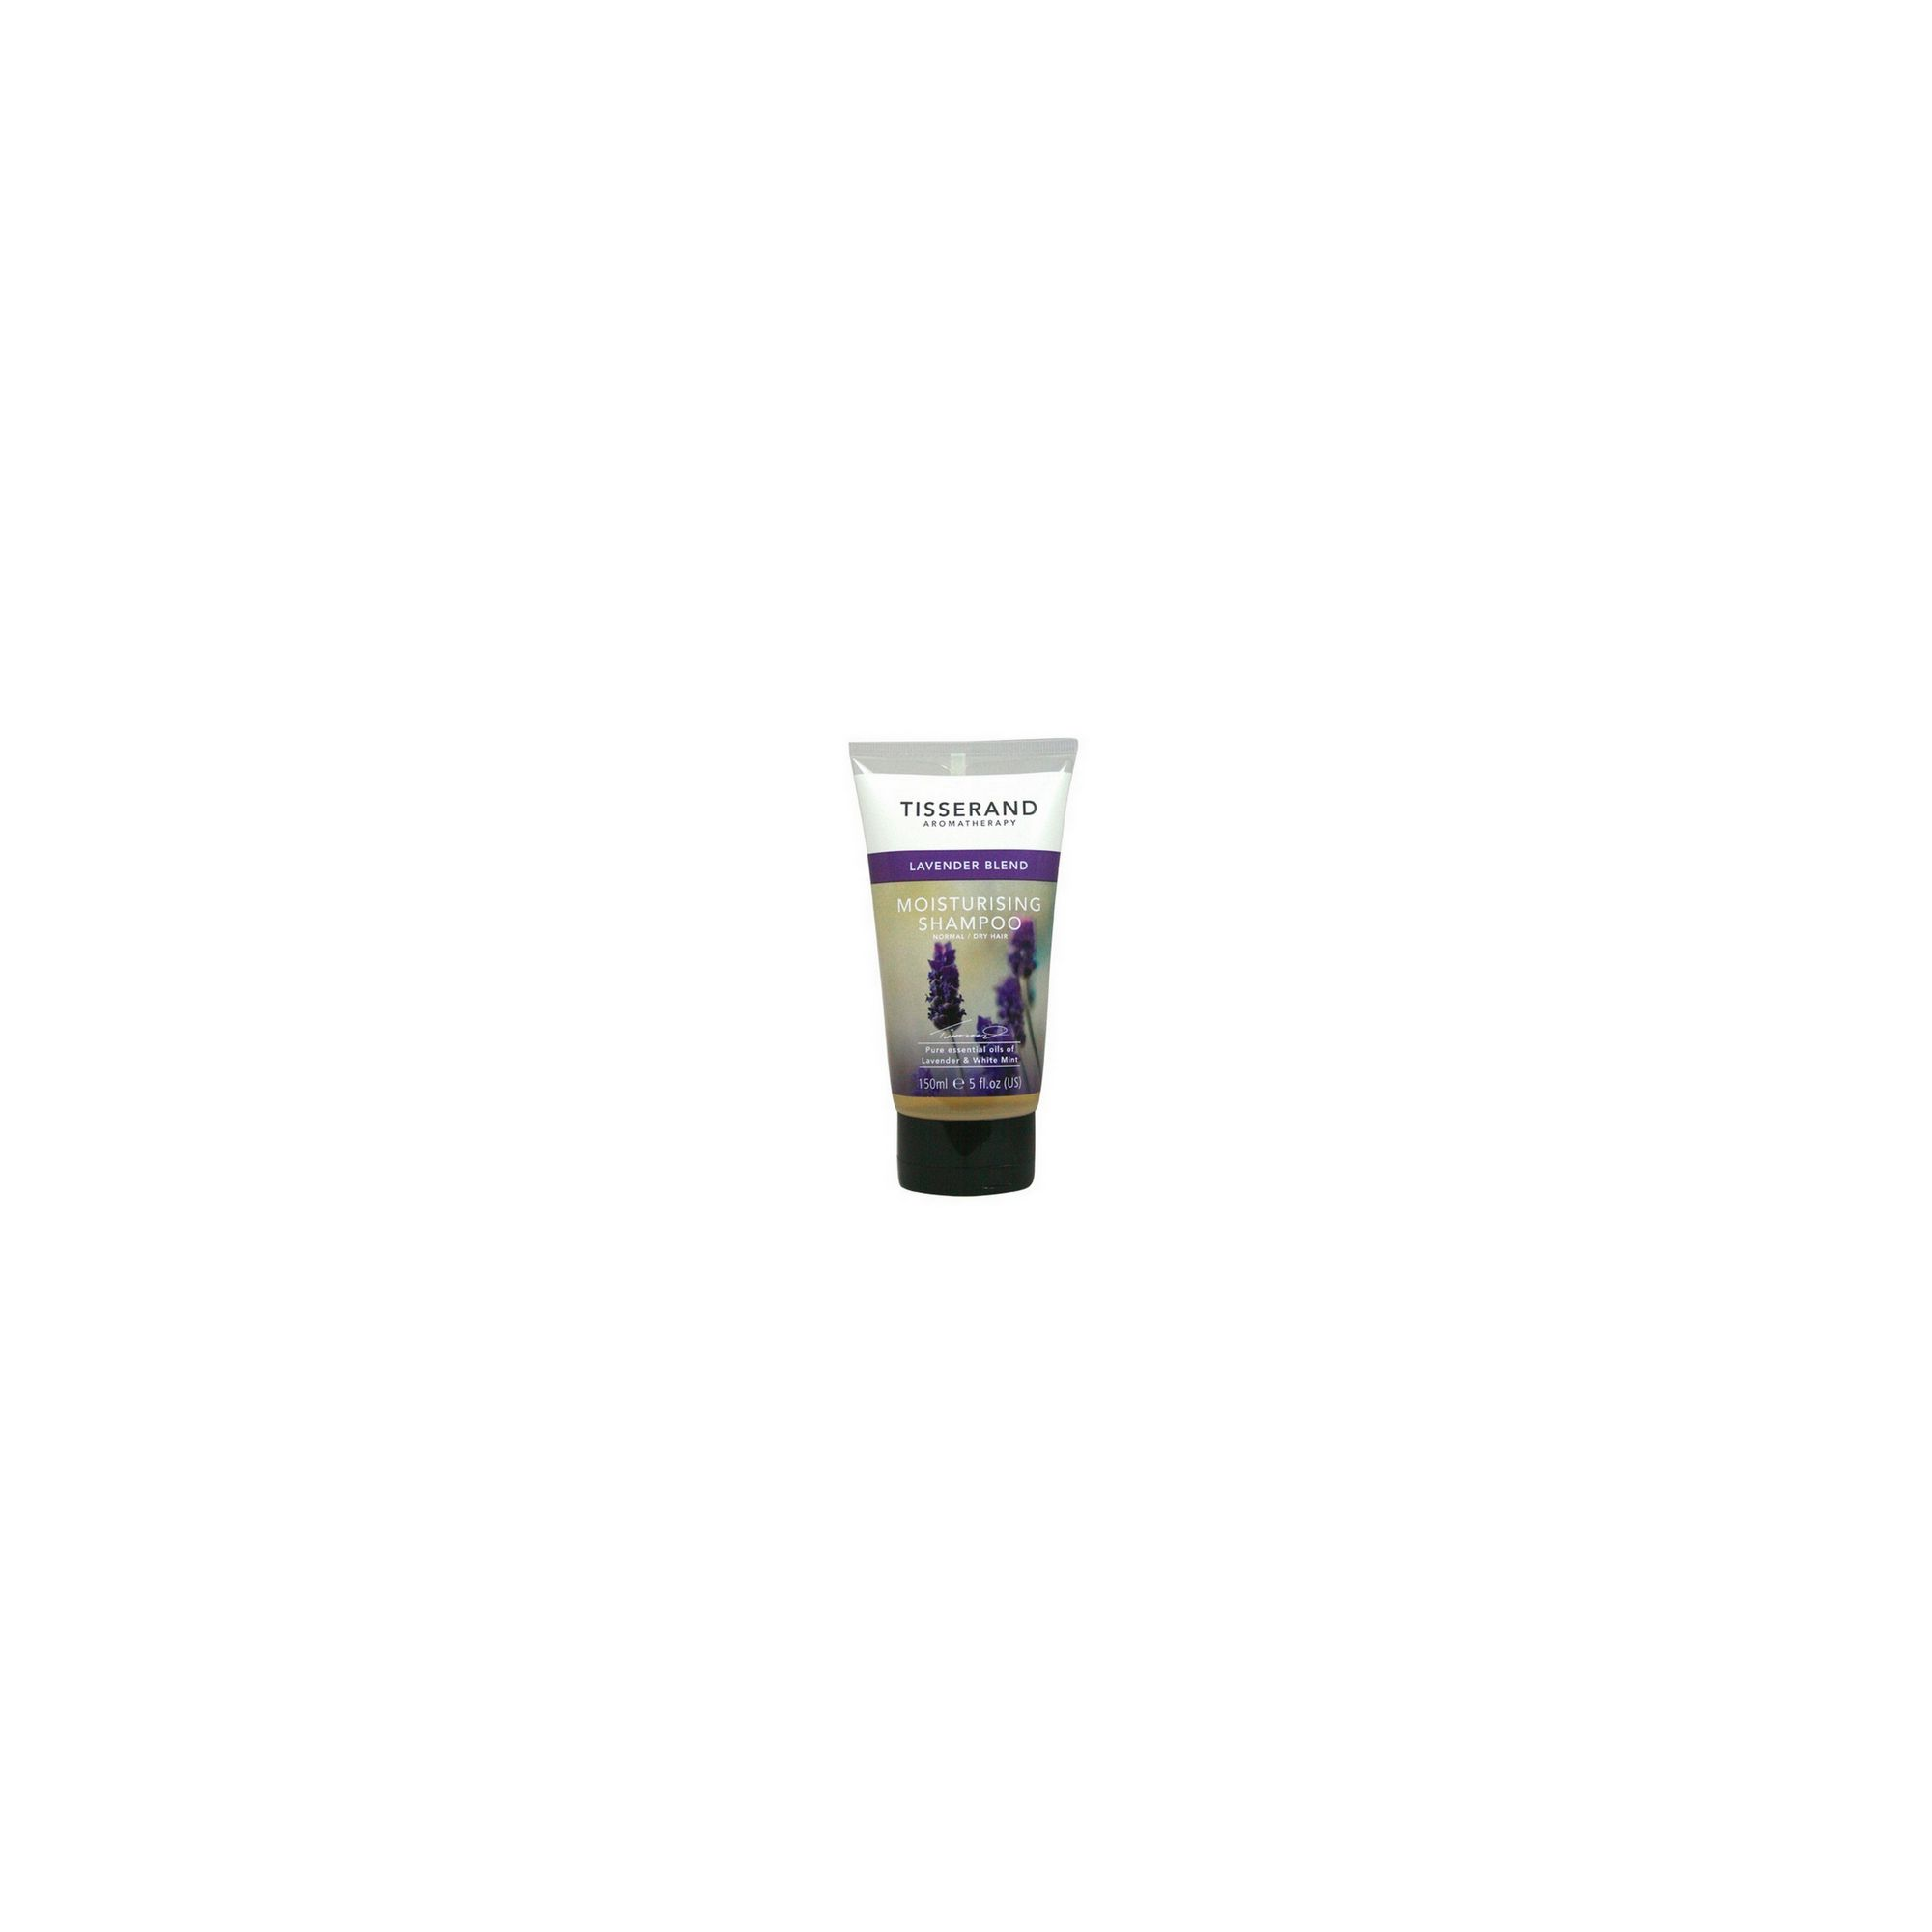 Tisserand Lavender & Mint Conditioning Shampoo